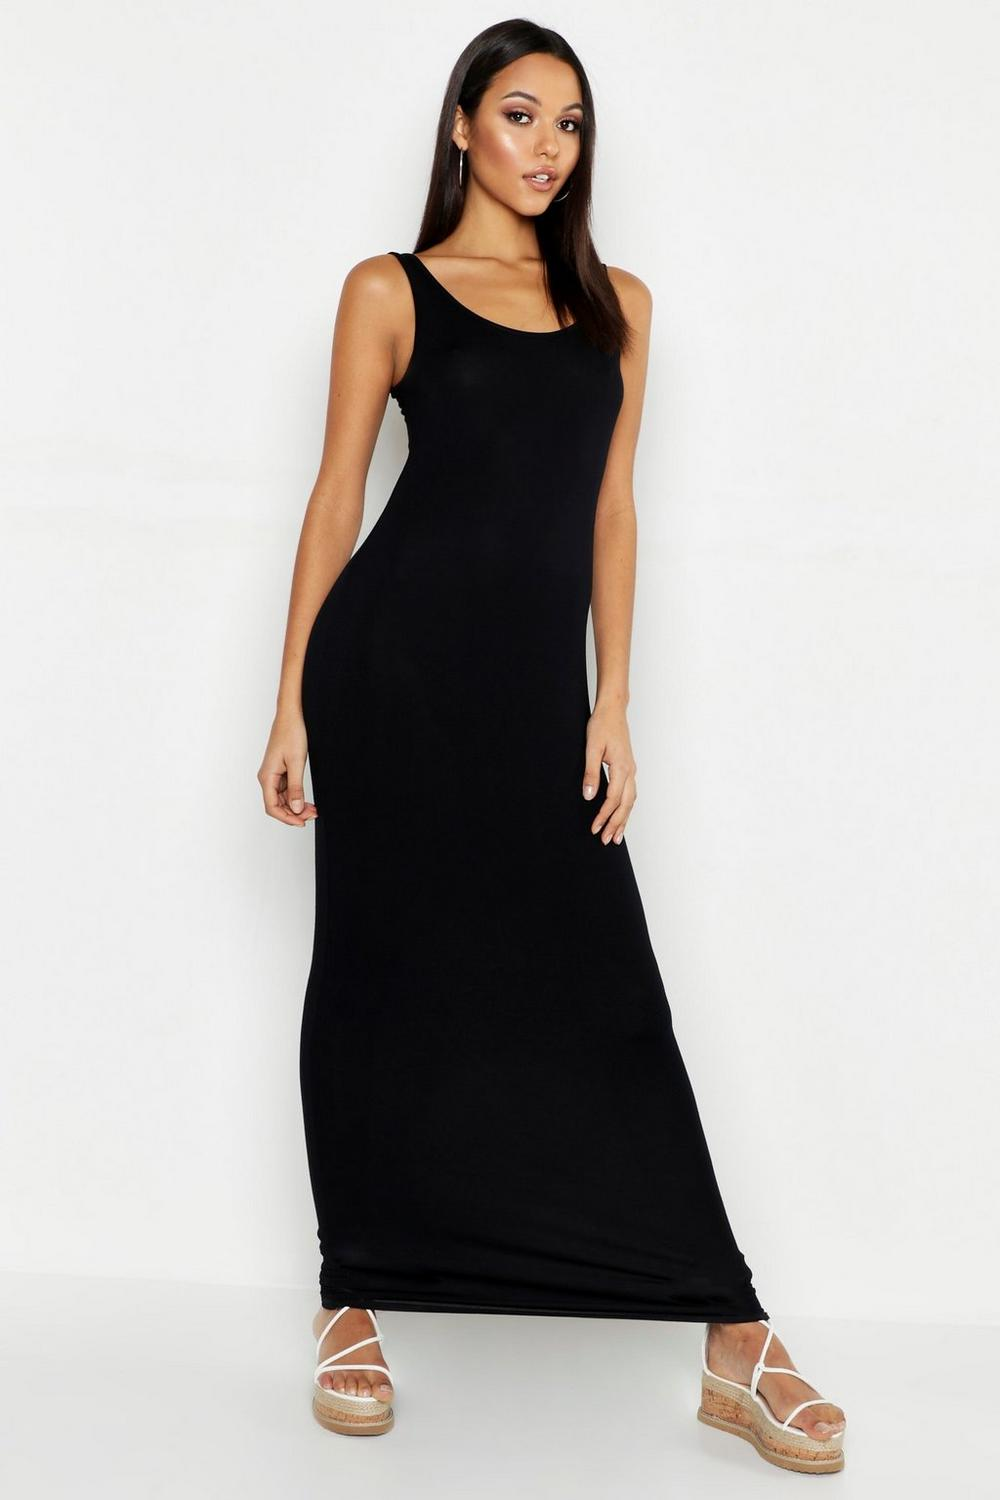 Tall clothing for women uk